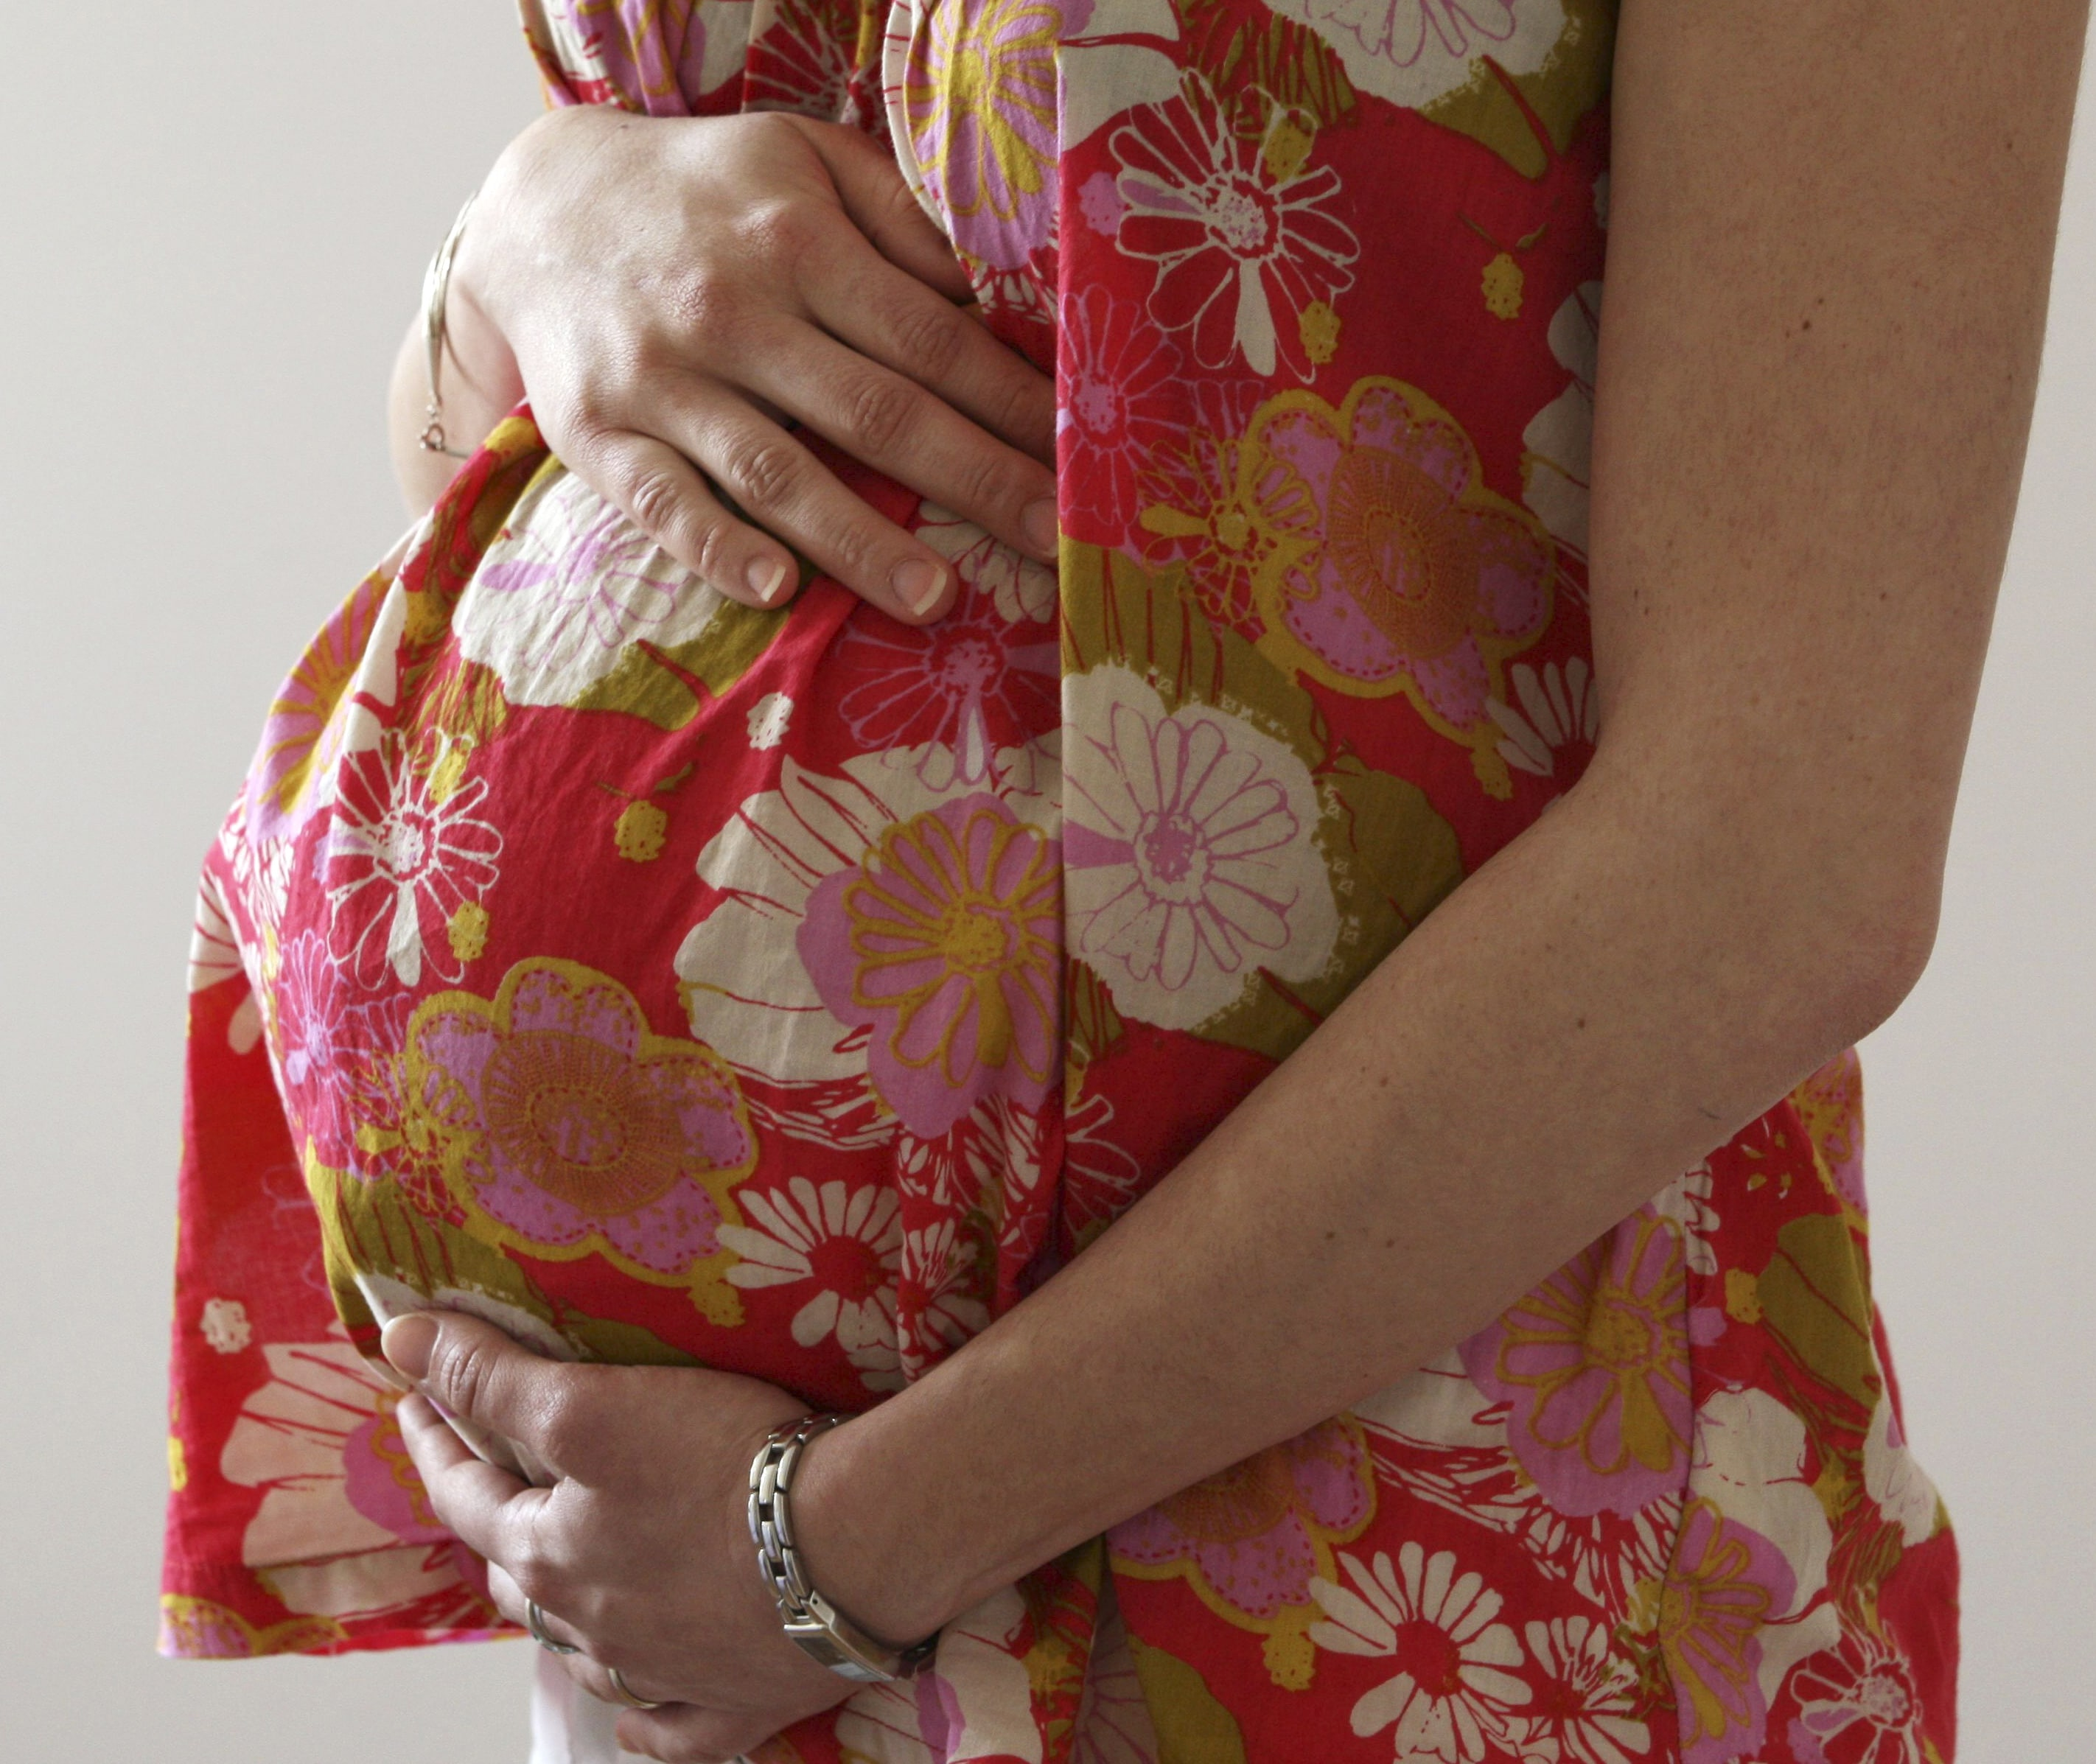 Get answers for all frequently asked questions about pregnancy